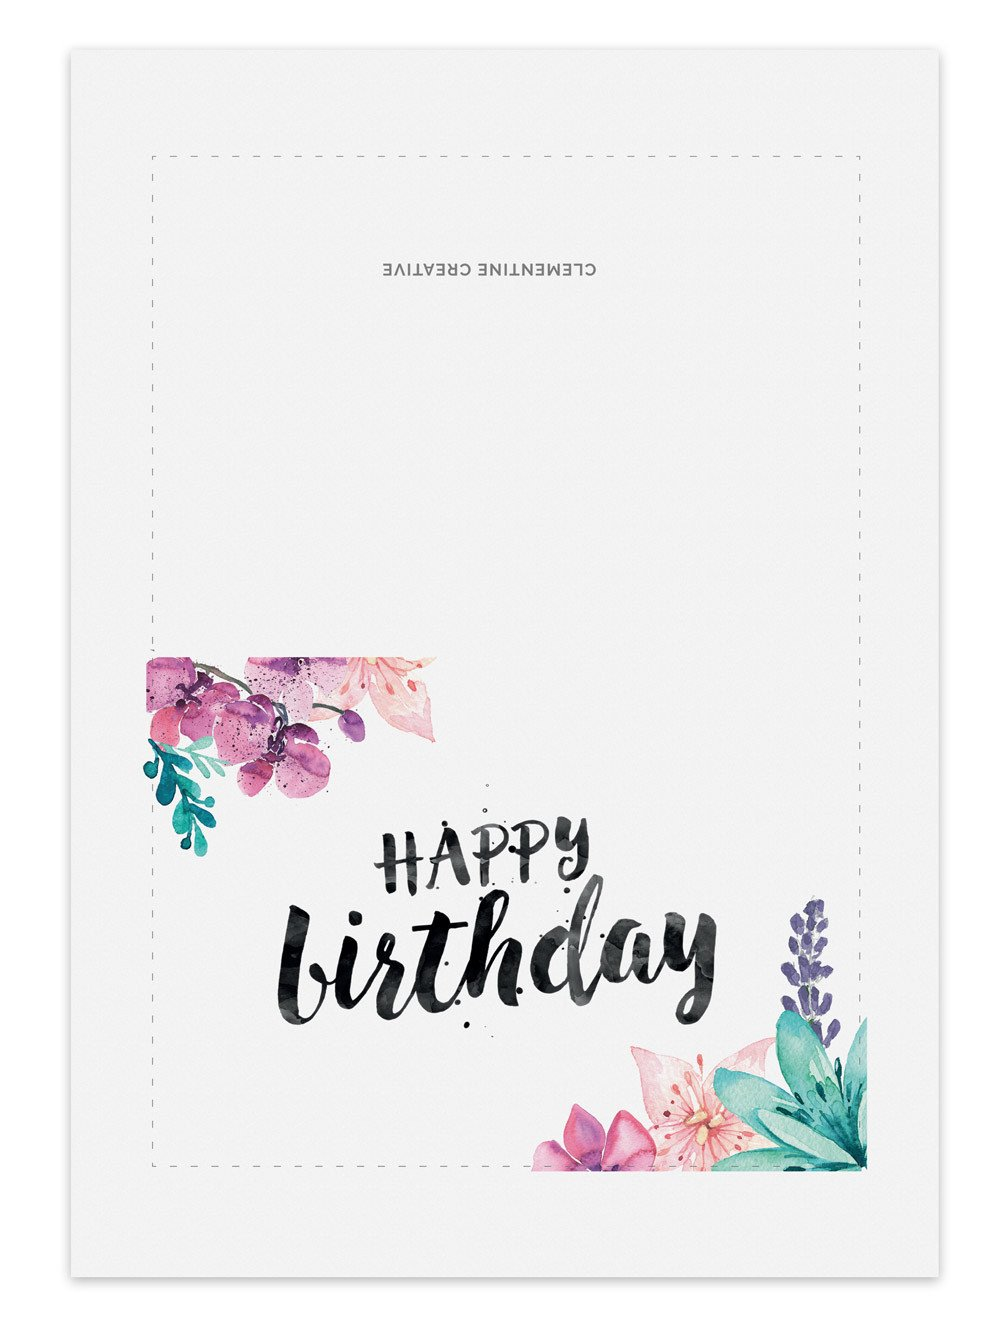 cool printable birthday cards Incep.imagine ex.co